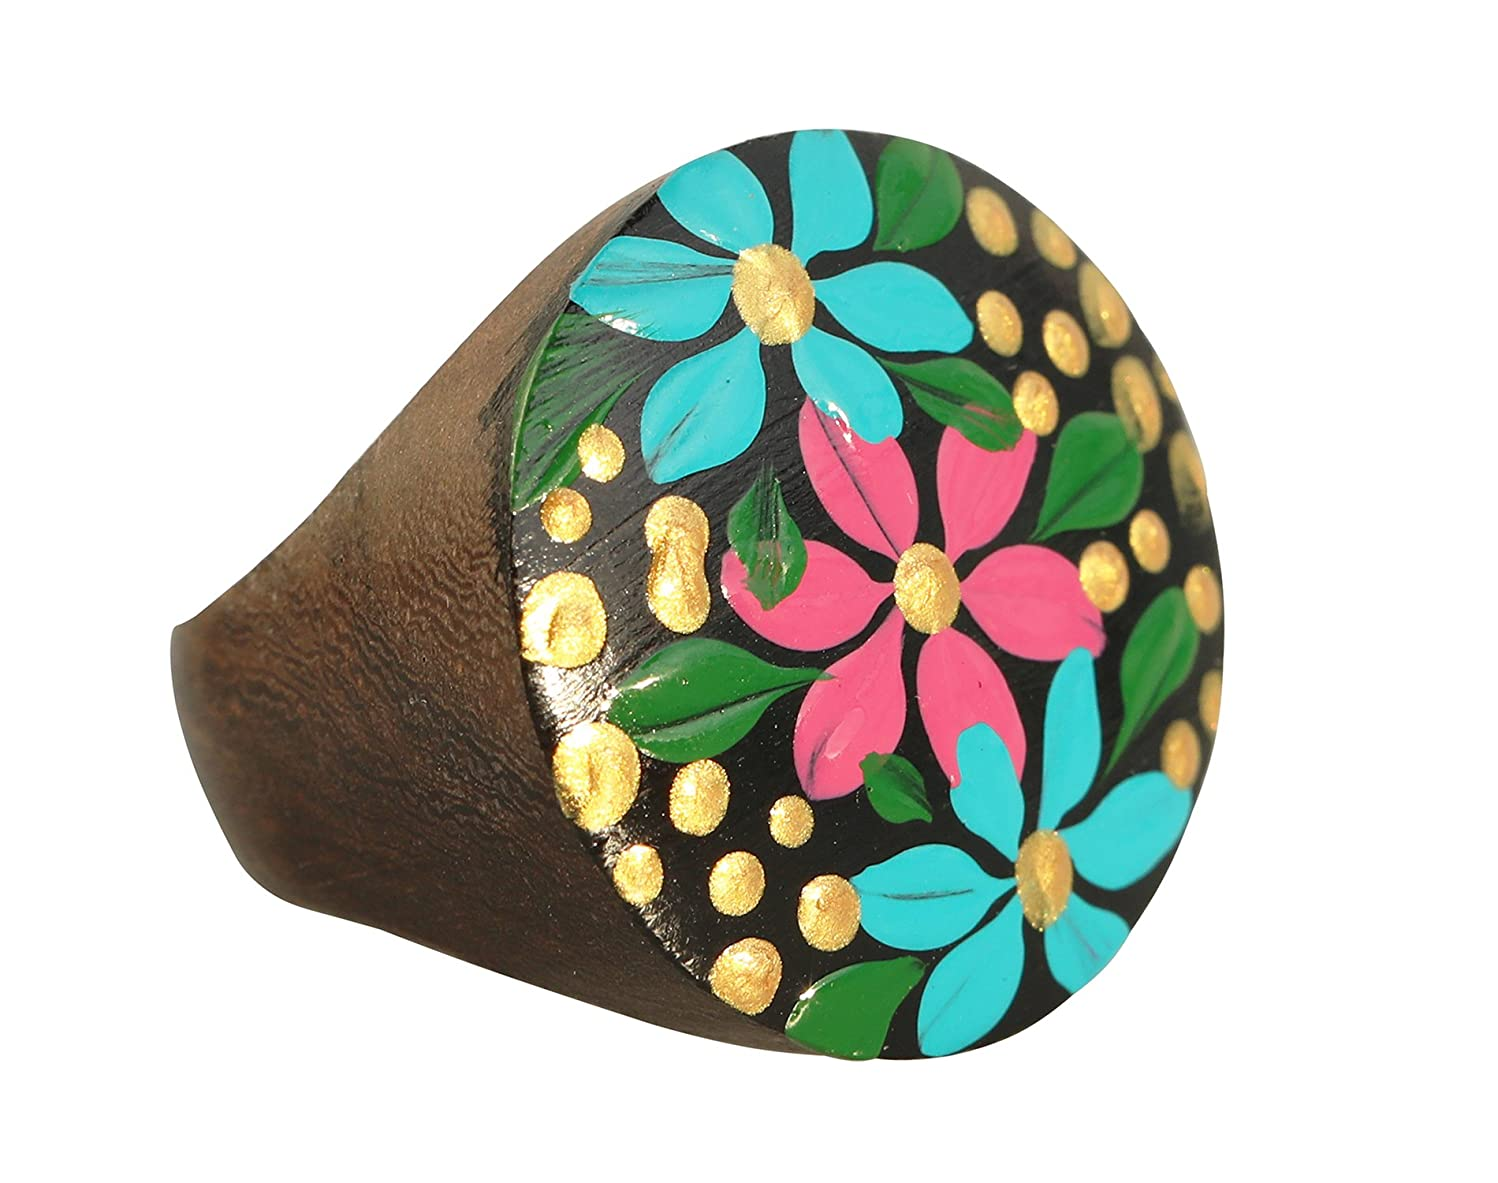 All Natural Hypoallergenic Wood Rings - 20mm Diameter, 10 1/4 (10.25) US size - Blue Pink Green Black